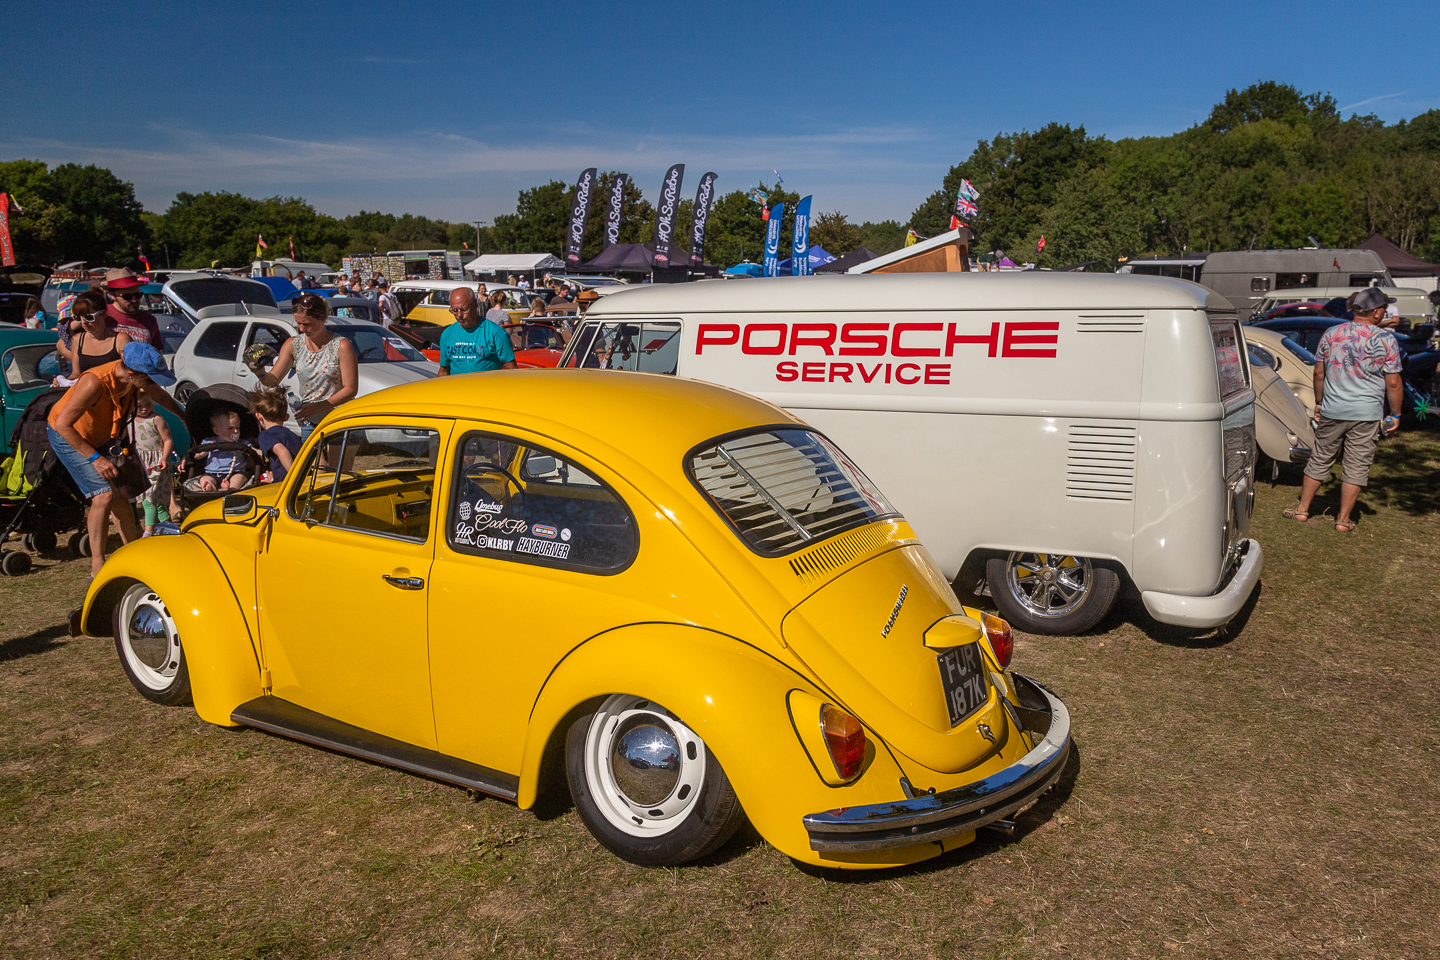 Yellow Volkswagen Beetle and delivery van